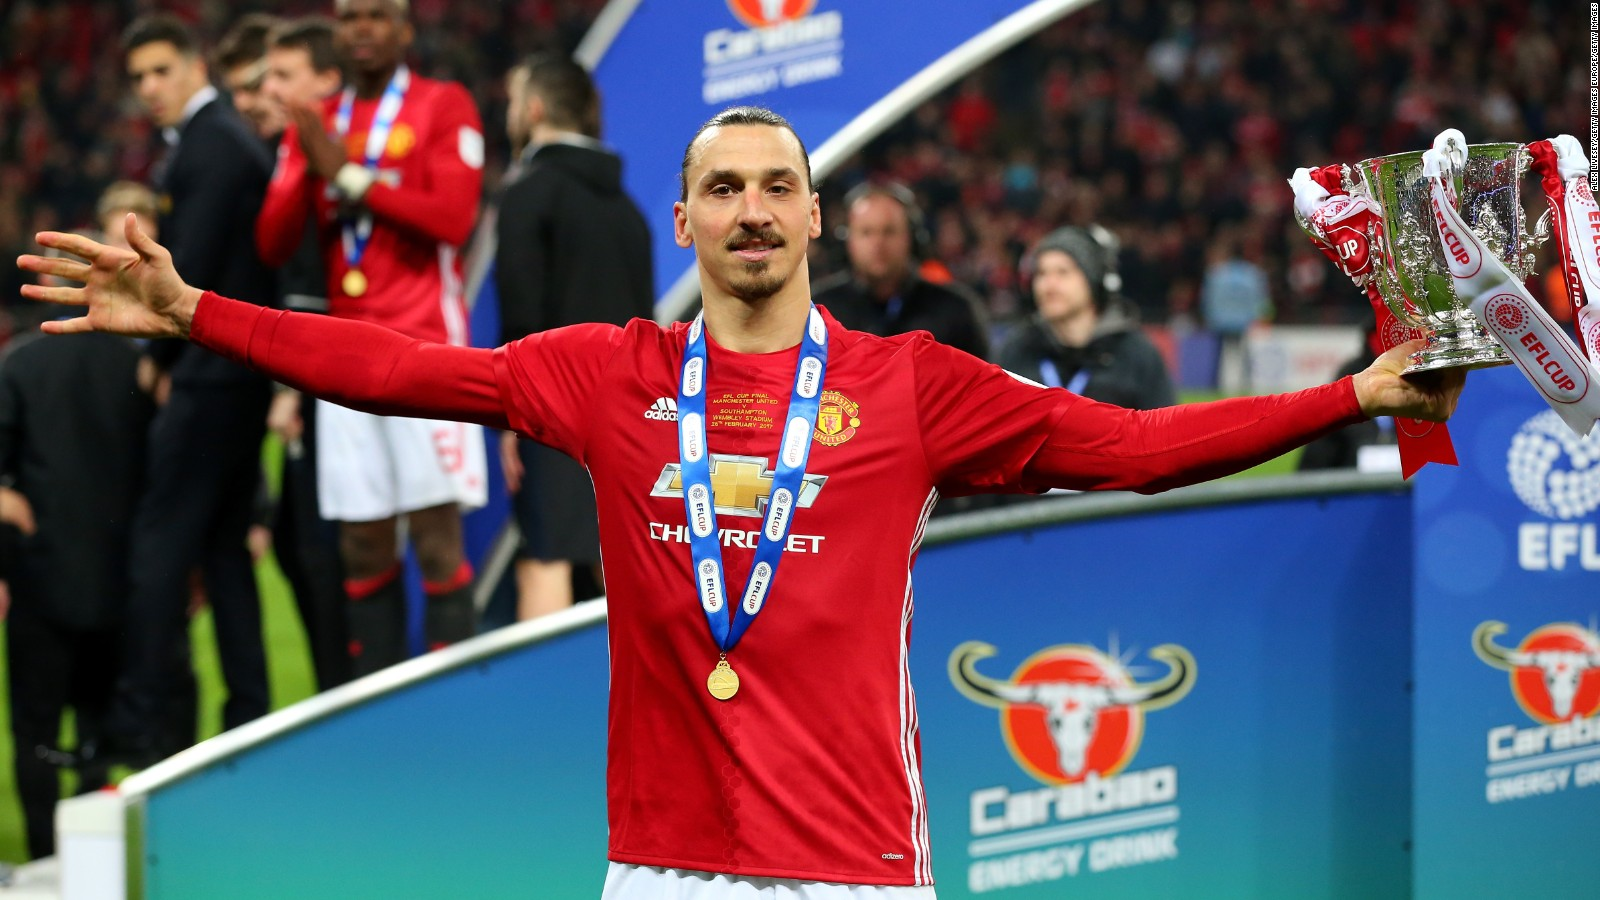 Zlatan Ibrahimovic Says He Is President Coach And Player At Ac Milan After Comeback Win Over Juventus Cnn